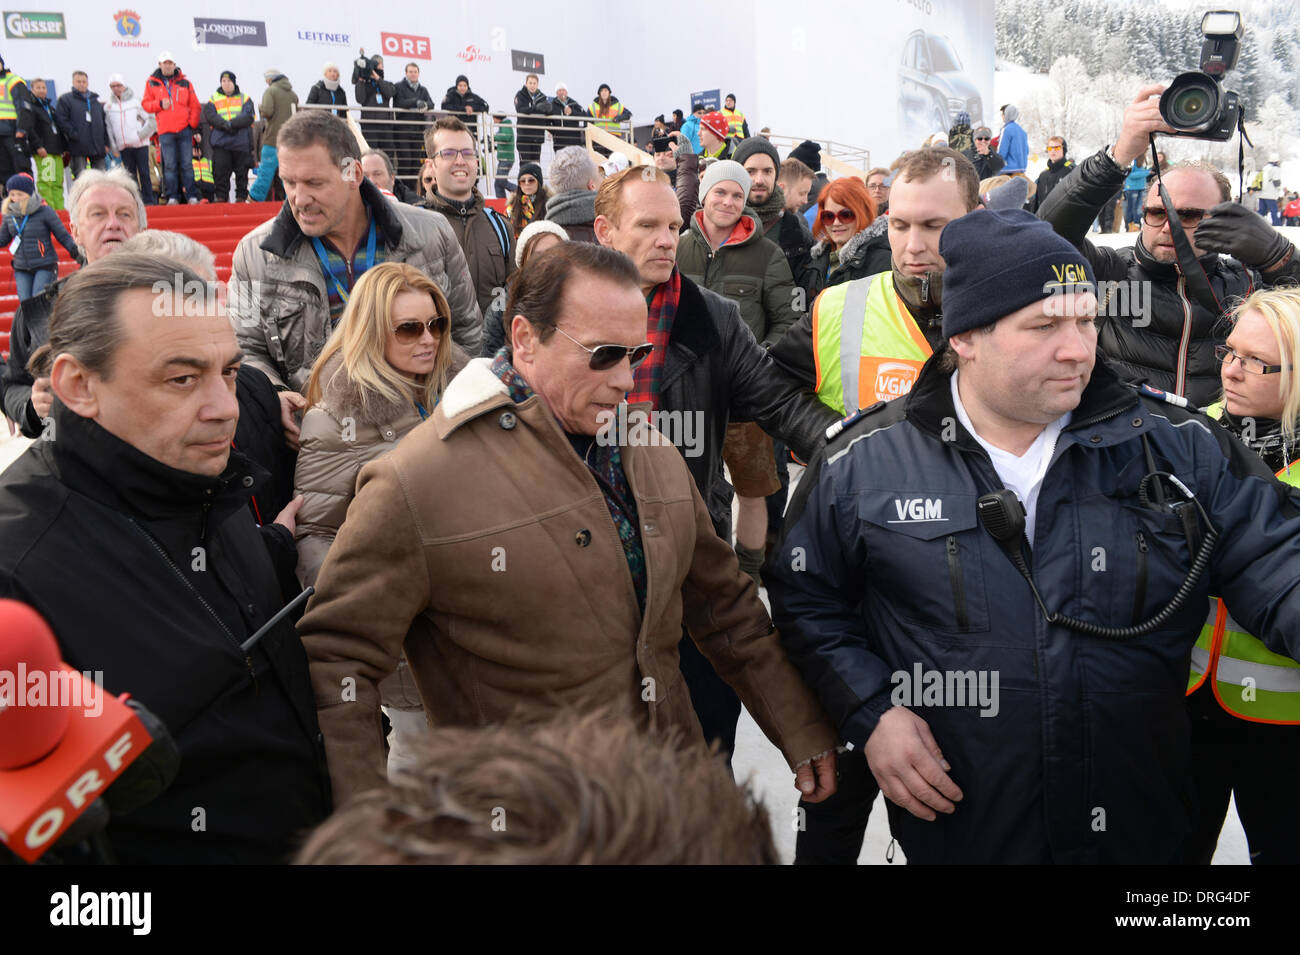 Kitzbuehel, Austria. 25th Jan, 2014. Former US governor and Hollywood actor Arnold Schwarzenegger (C) and his girlfriend Stock Photo